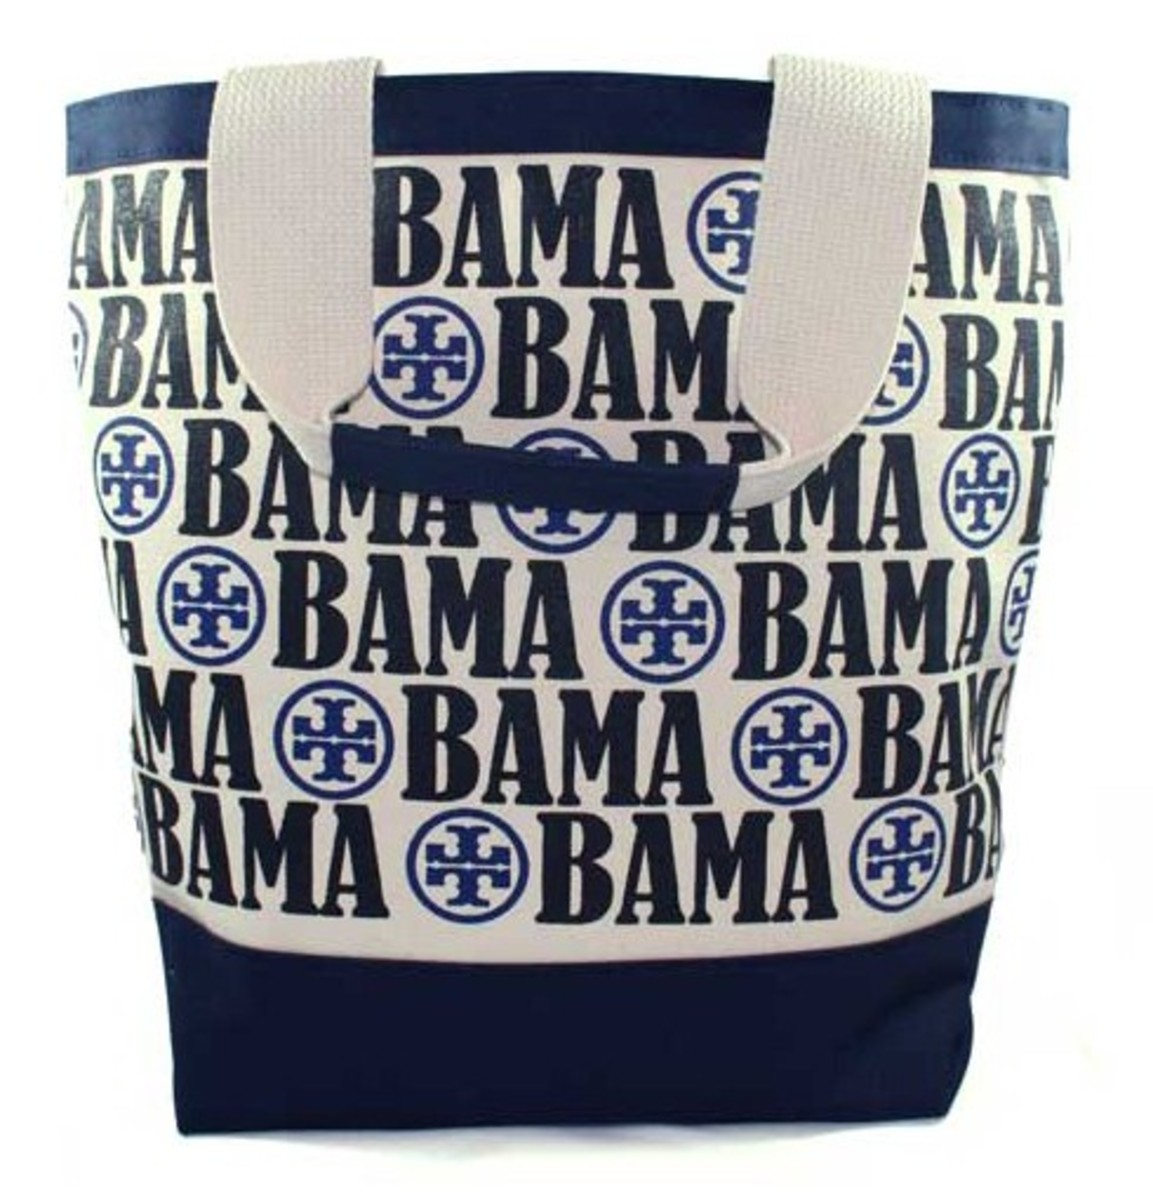 Barack Obama Inaugural: Runway To Change - Tory Burch Tote